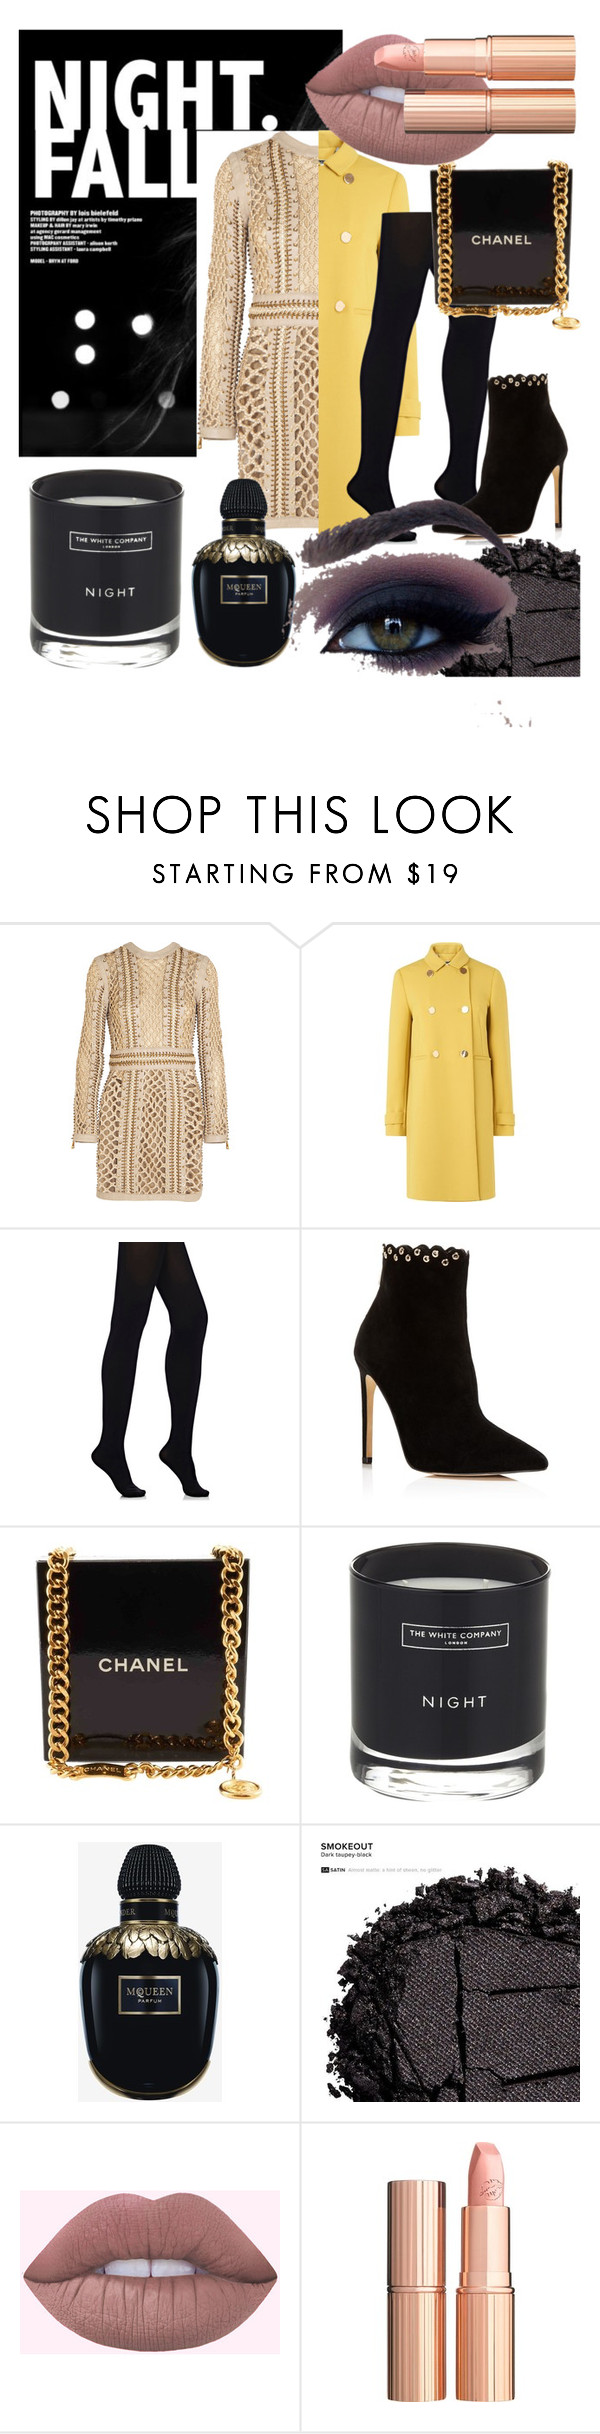 """Dressy winter"" by ninasater ❤ liked on Polyvore featuring Balmain, L.K.Bennett, Wolford, Raye, Chanel, The White Company, Alexander McQueen, Urban Decay and Charlotte Tilbury"